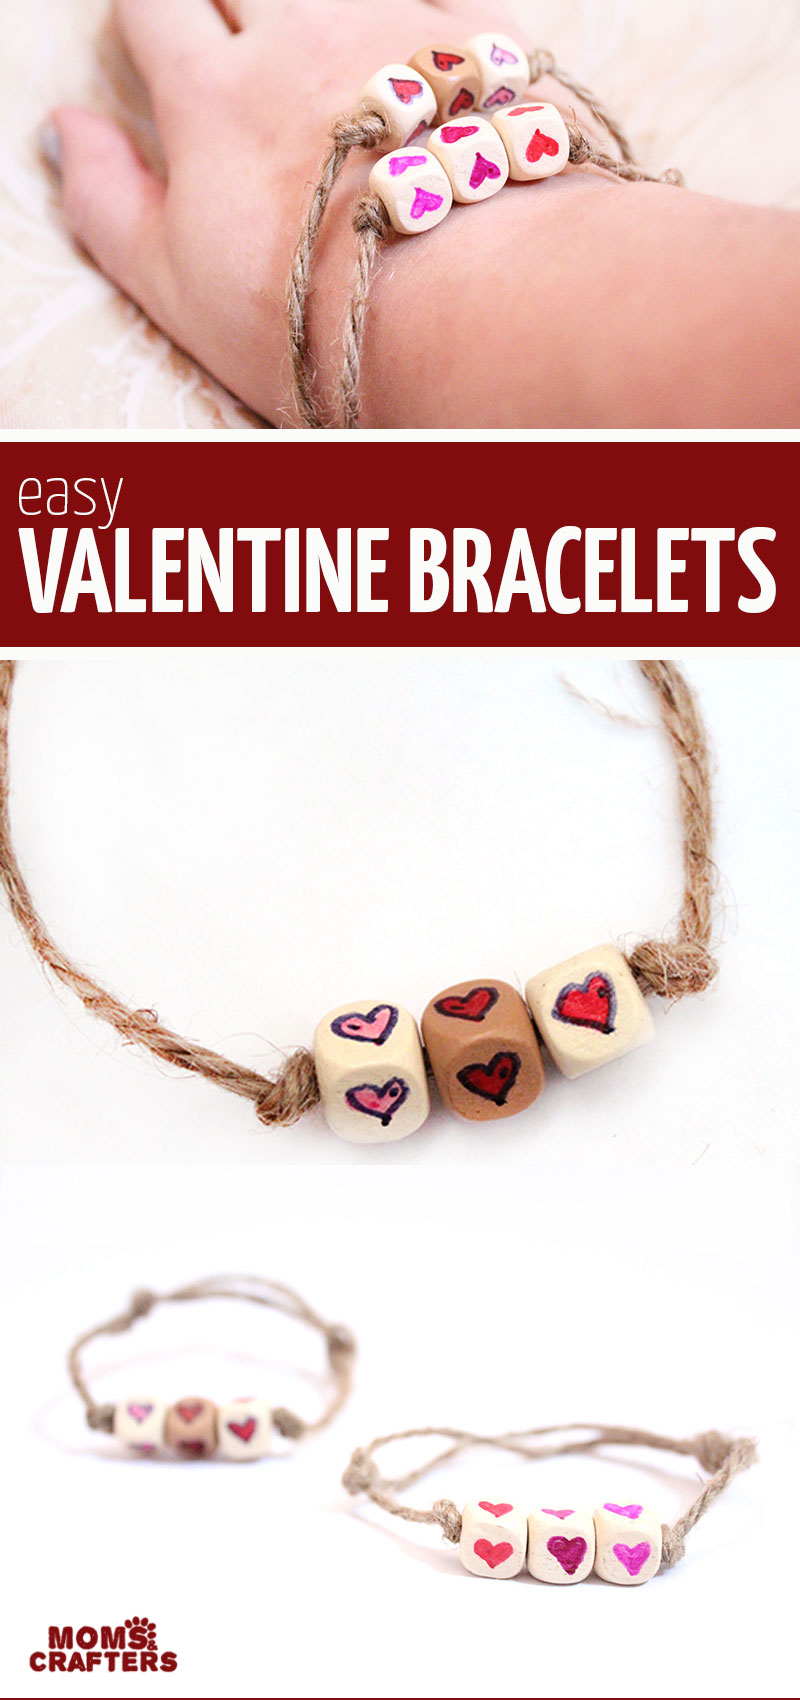 Click to learh now to make easy heart friendship bracelets - these fun DIY valentine ideas for tweens and teens are easy and cheap to make!